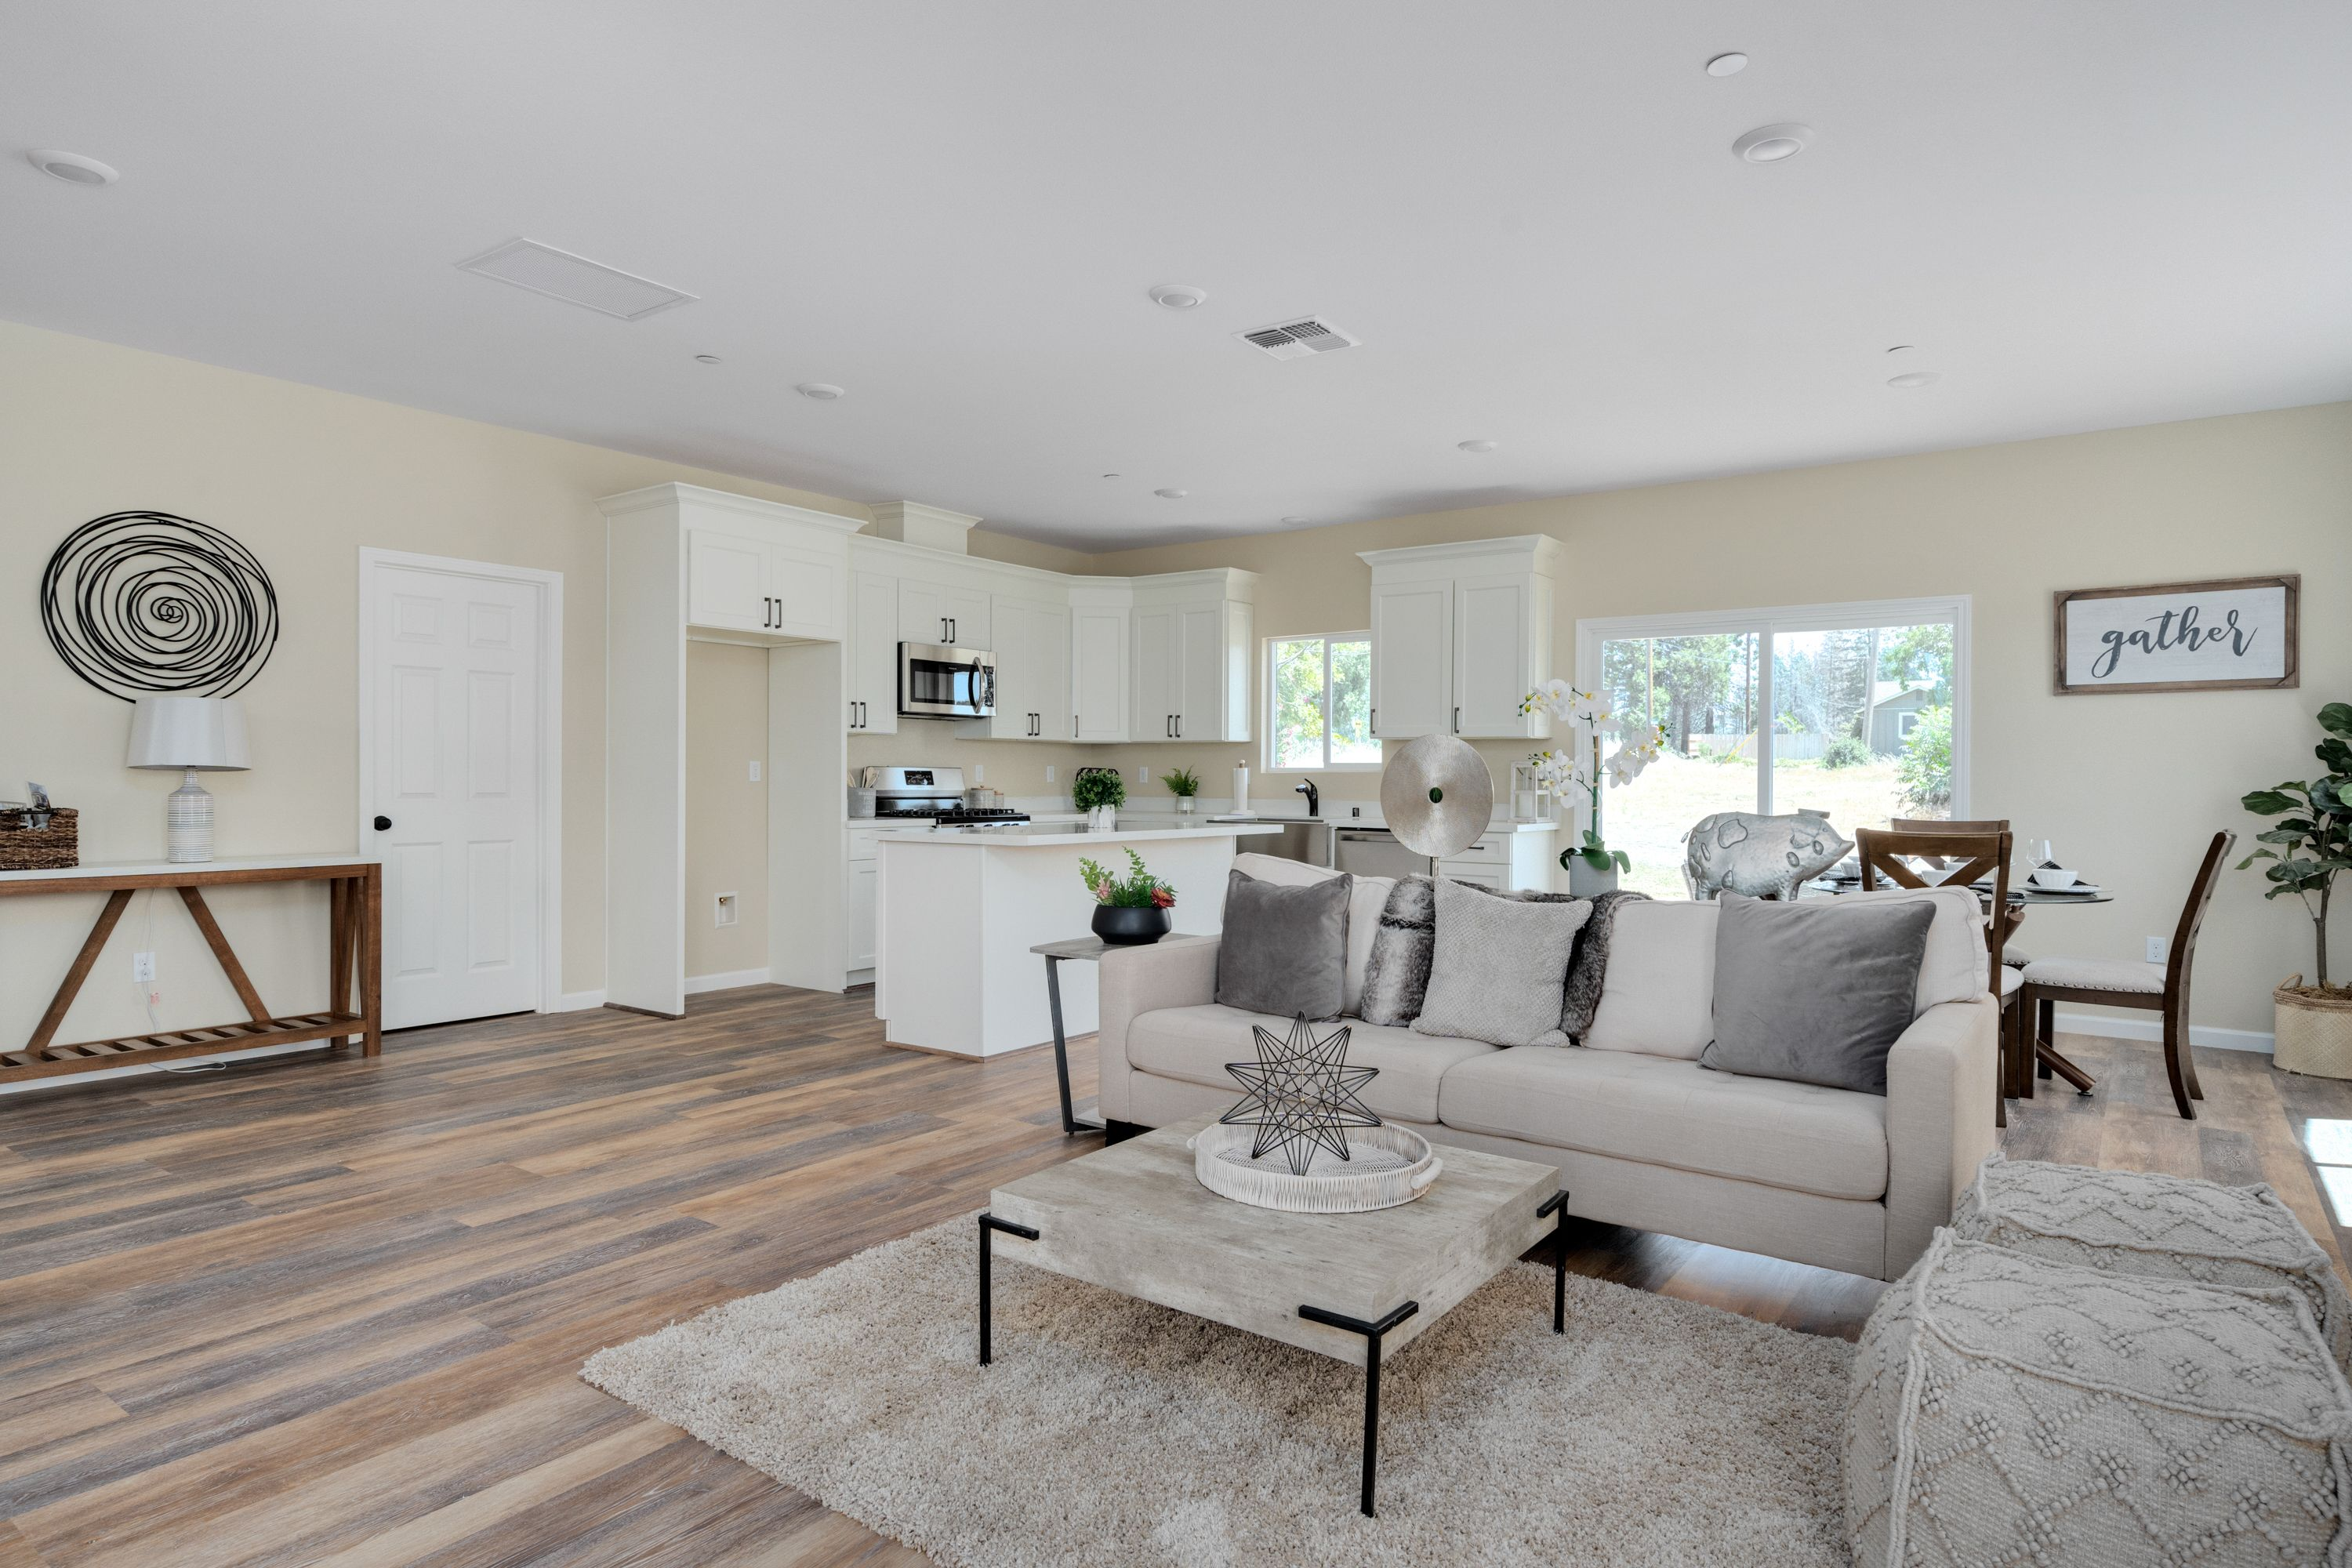 Living Area featured in the 280 Craft Lane By Silvermark Luxury Homes in Chico, CA